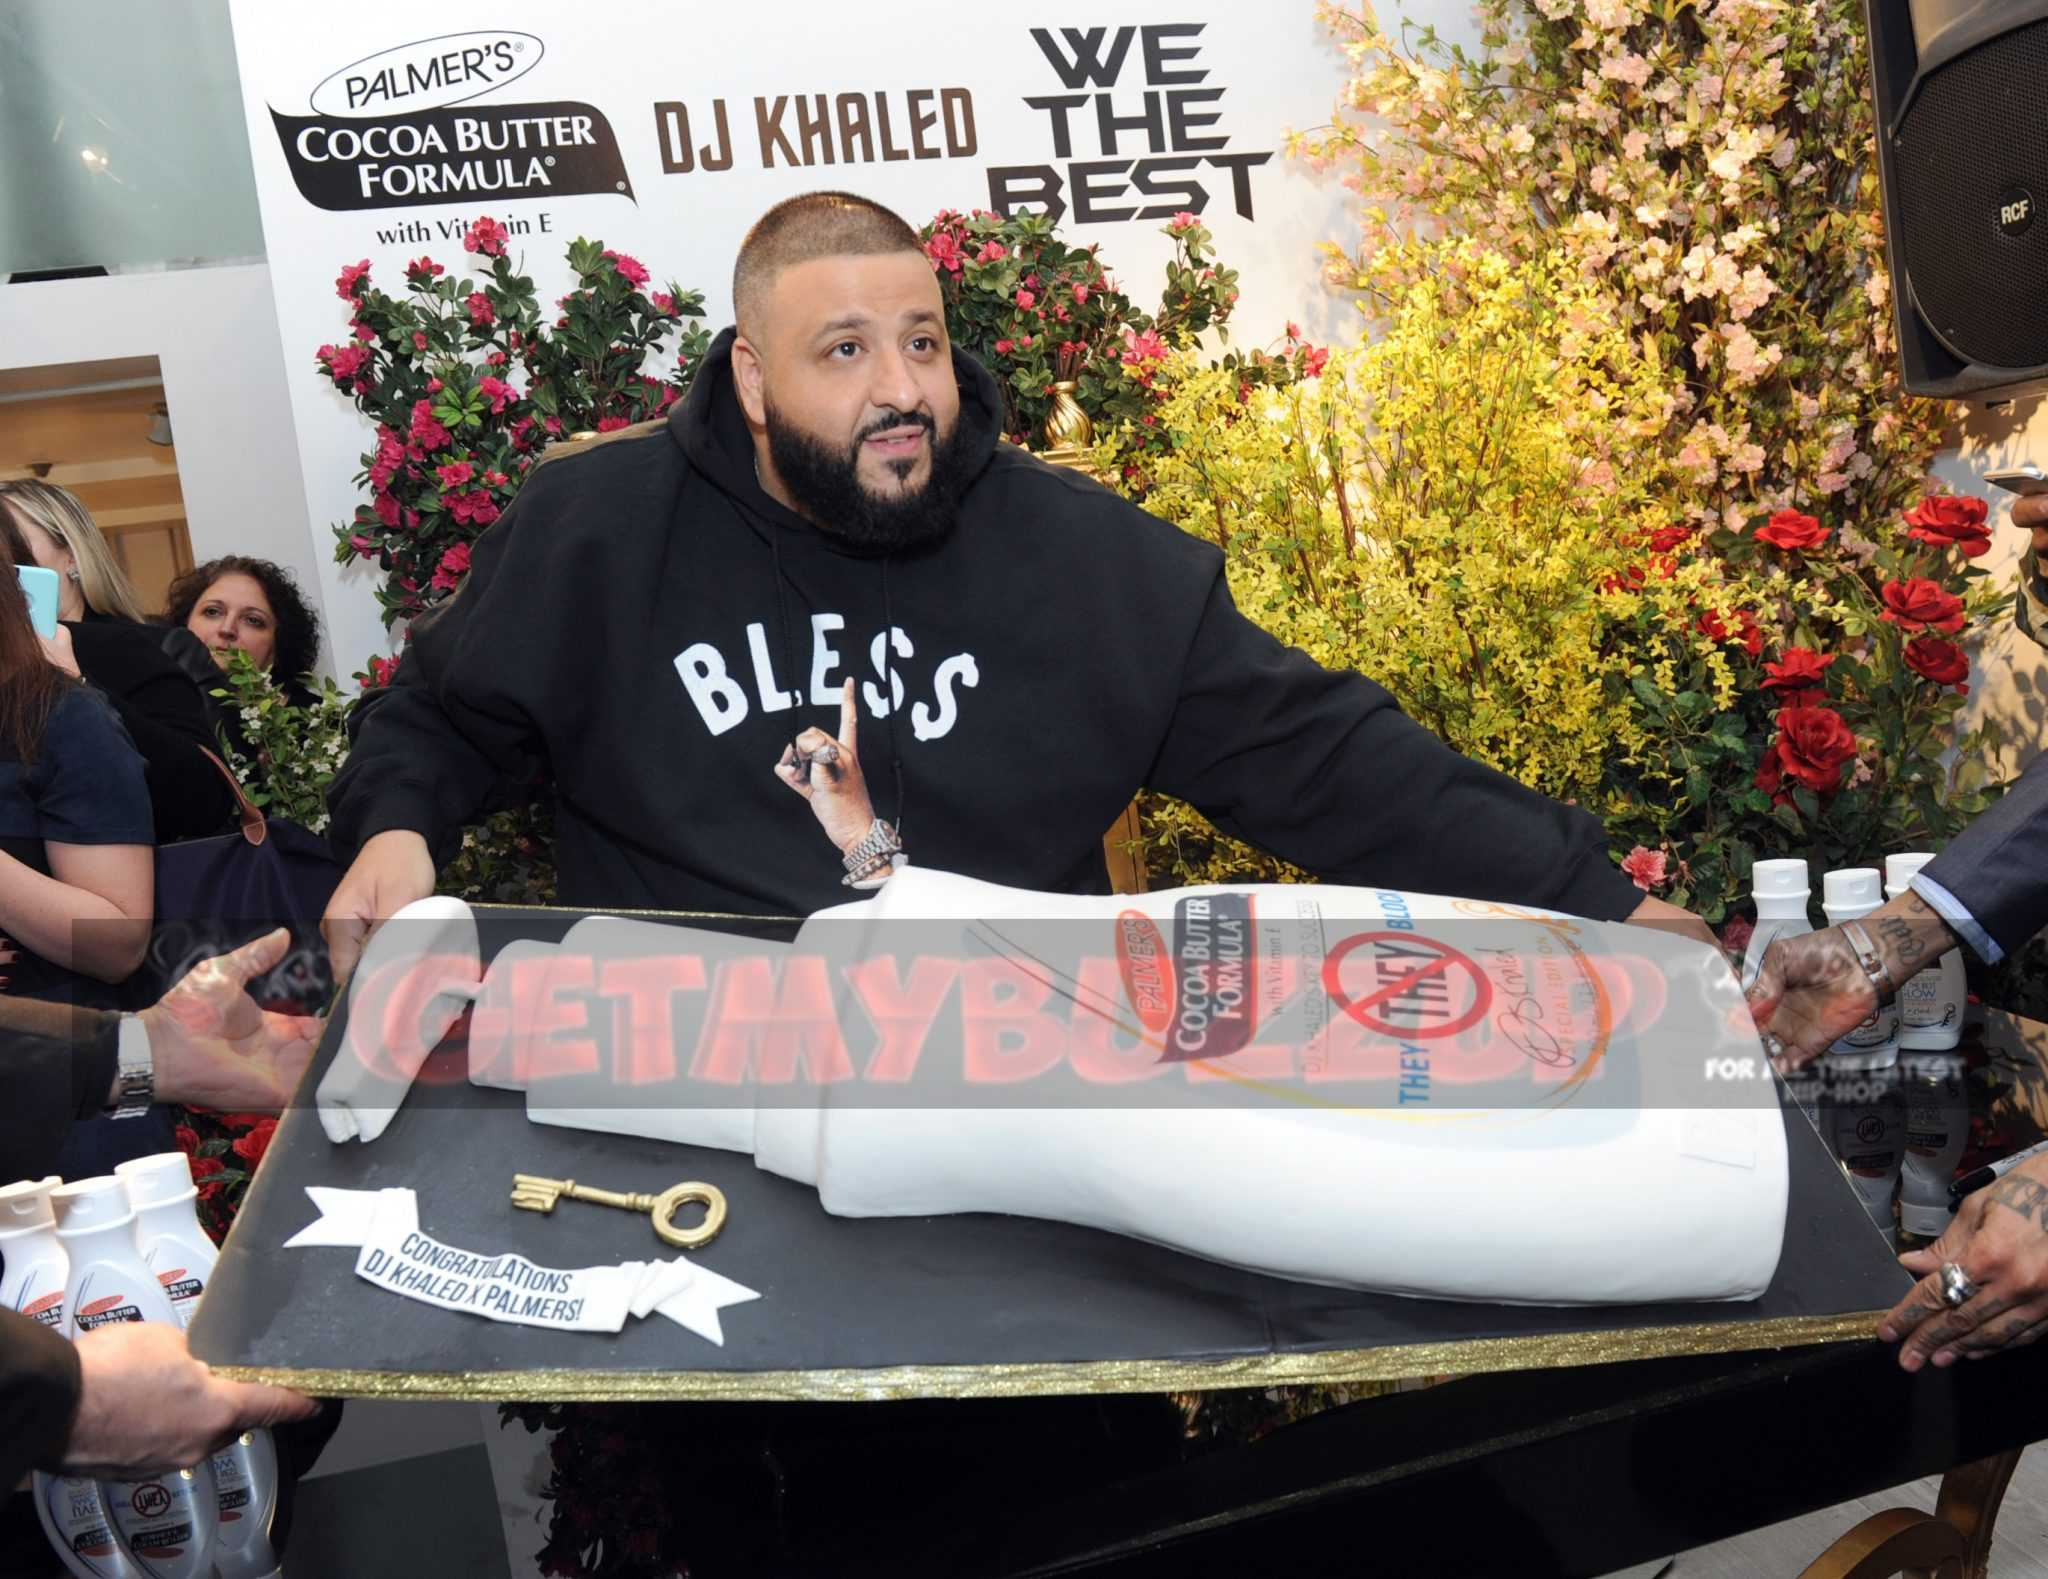 DJ Khaled Greets Hundreds of Fans in NYC Yesterday at DJ Khaled and Palmer's Fan Luv Event [Photos]